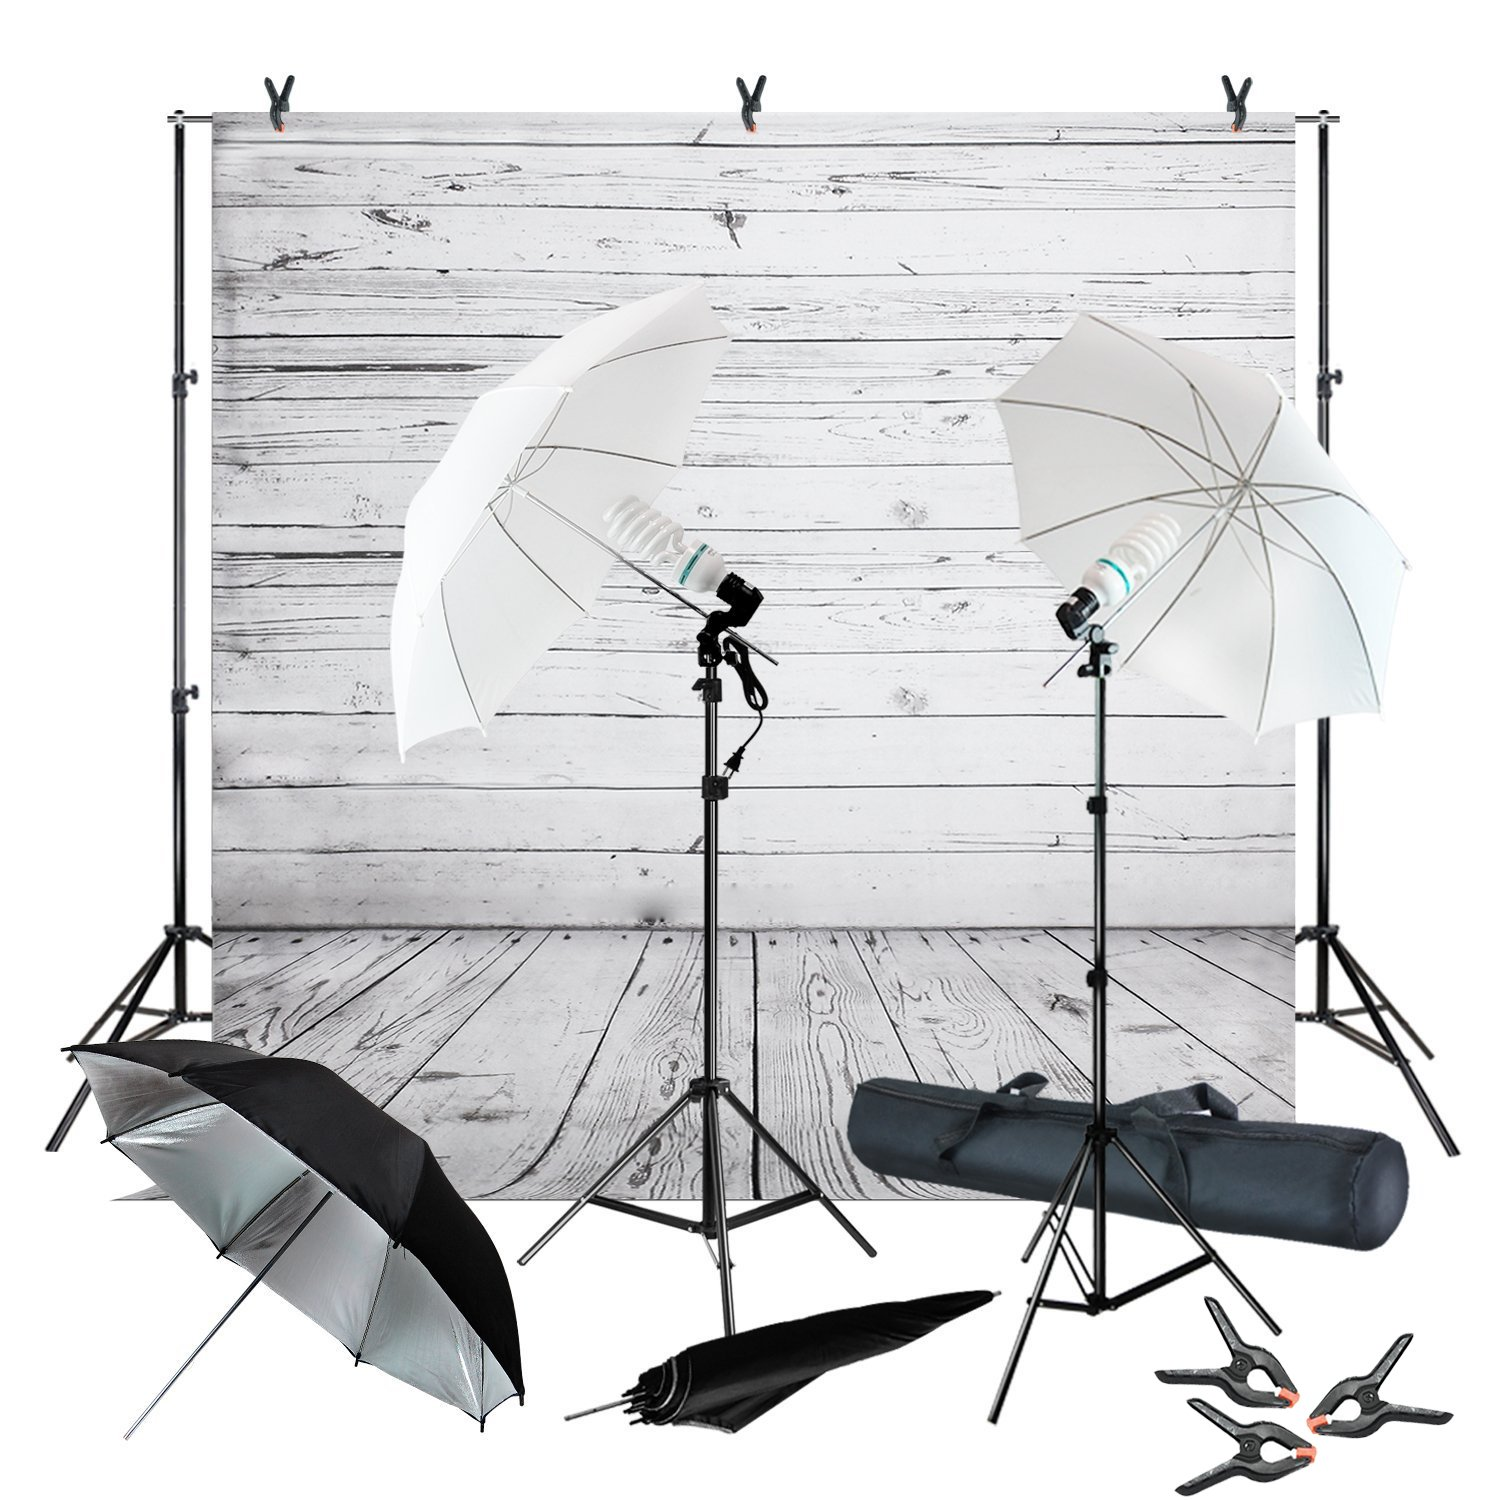 Julius Studio Wood Floor Backdrop Muslin with Umbrella Lighting Kit, Background Support Stand, Bulb, Socket, Spring Clamp, White & Black Umbrella Reflector, Photography Studio, JSAG355